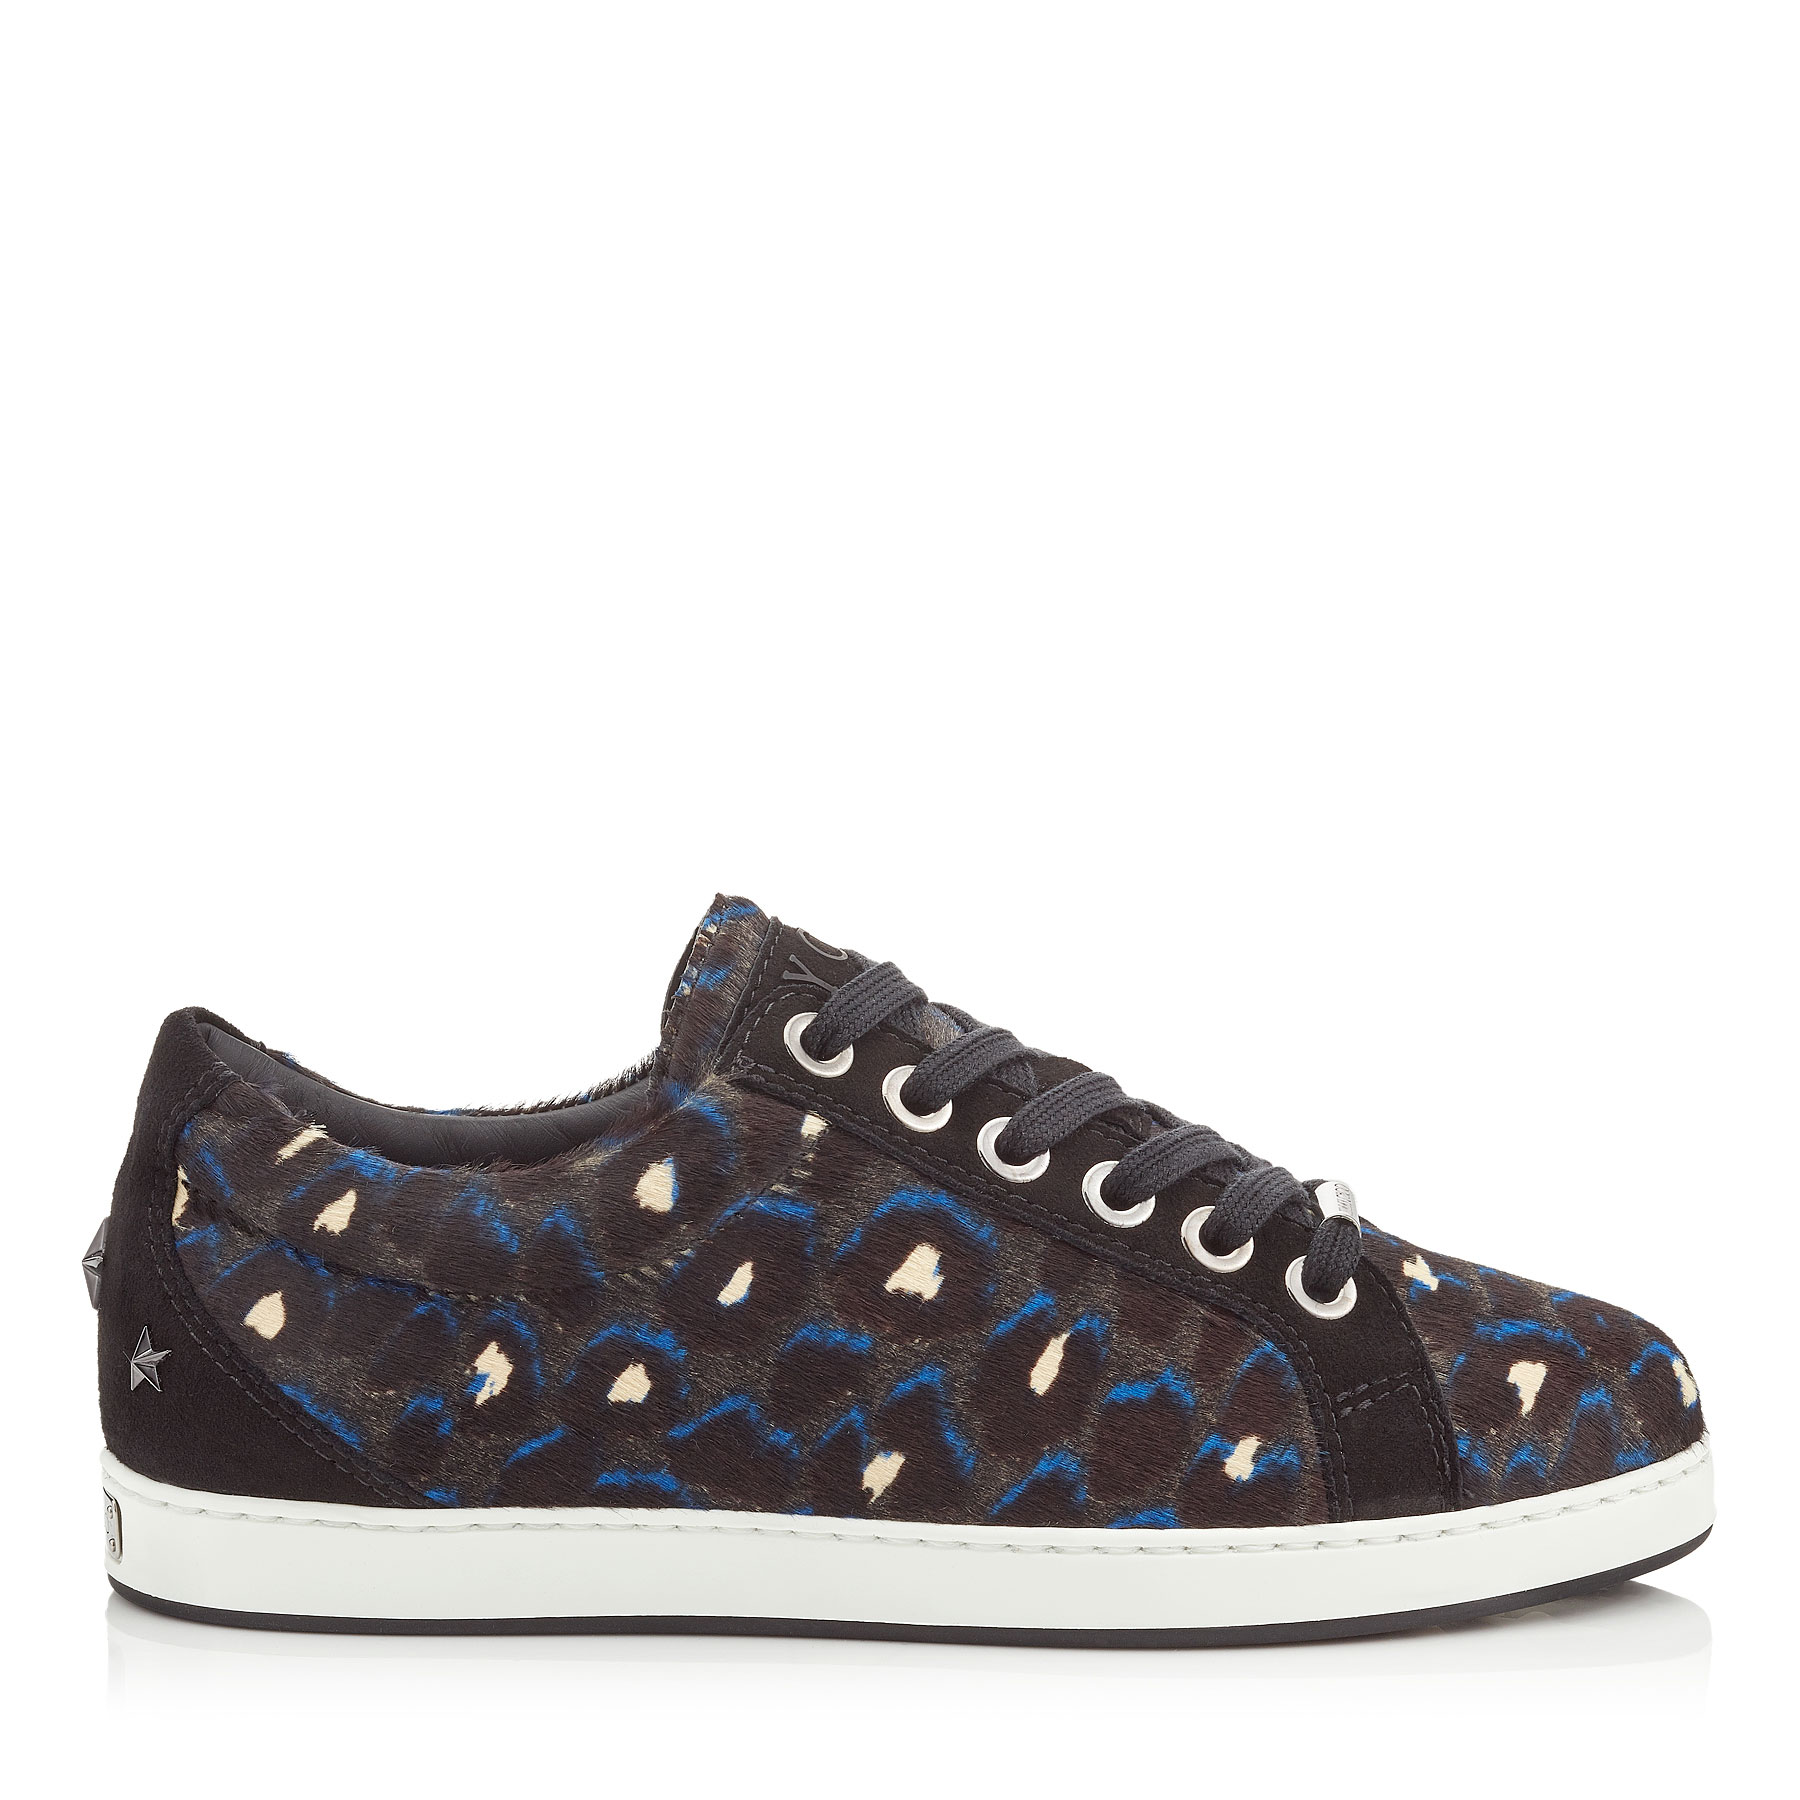 CASH/F Pop Blue Mix Leopard Print Pony and Black Suede Low Top Trainers by Jimmy Choo